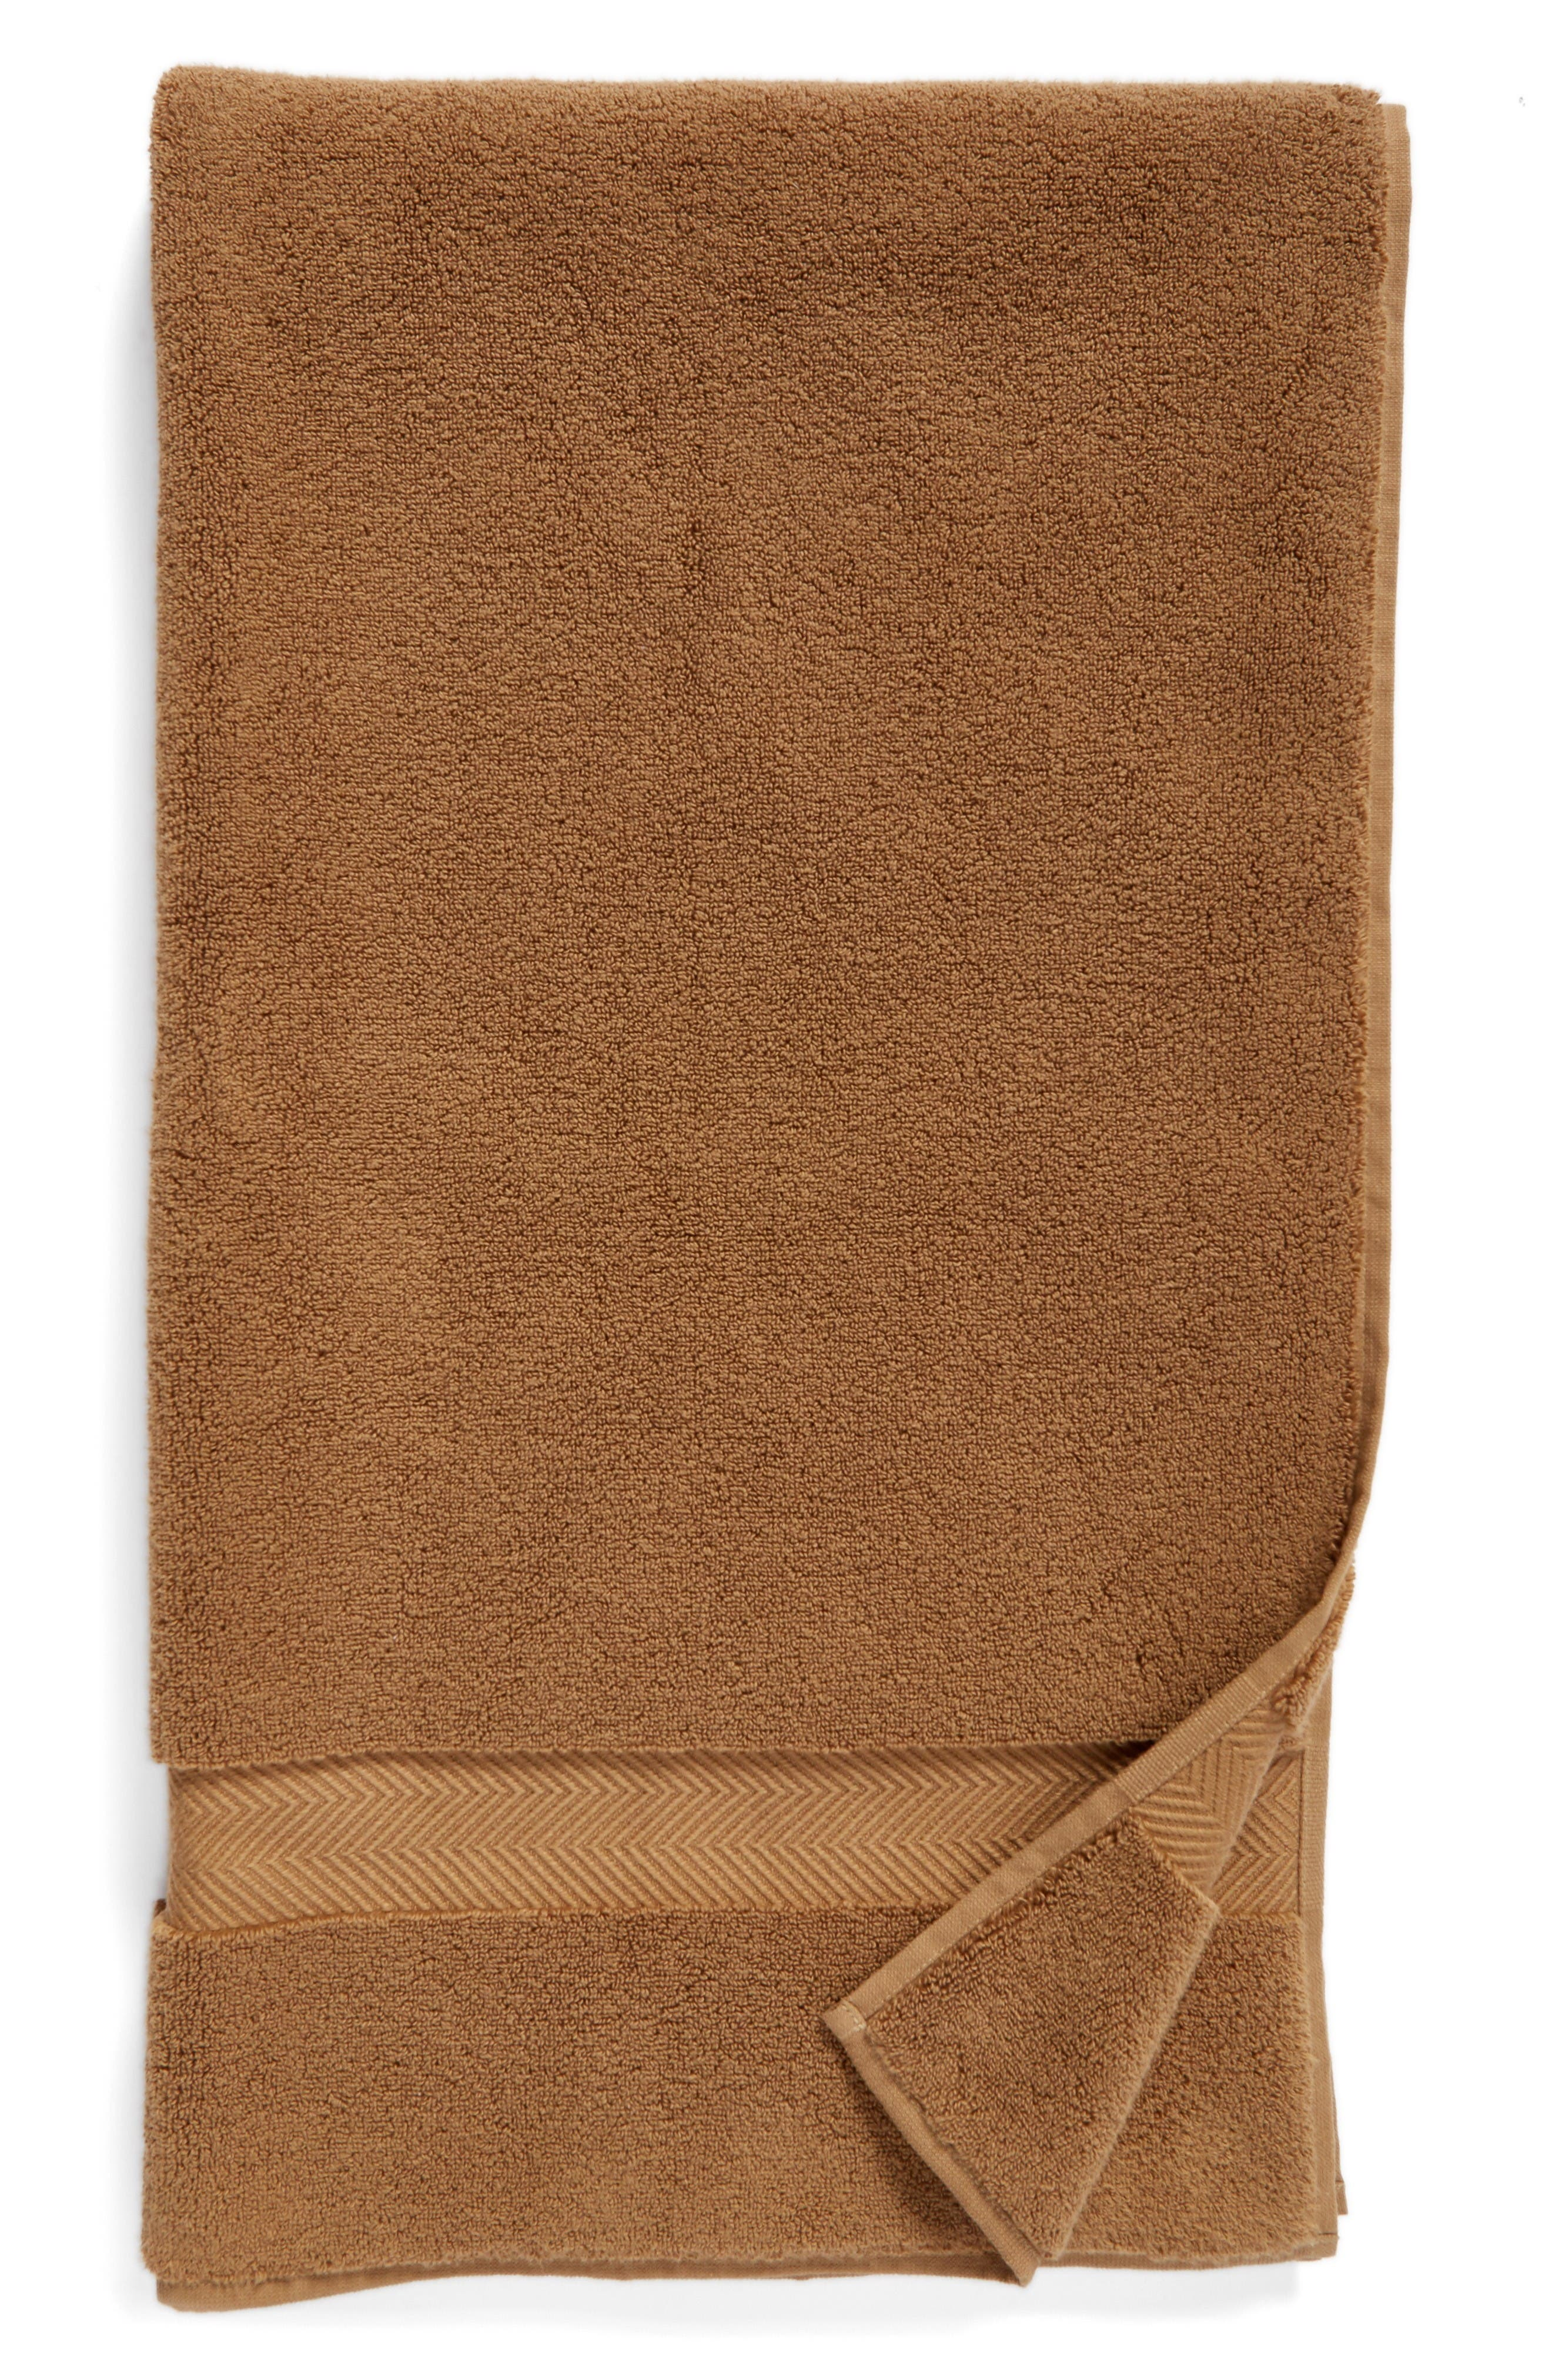 Alternate Image 1 Selected - Nordstrom at Home Hydrocotton Bath Towel